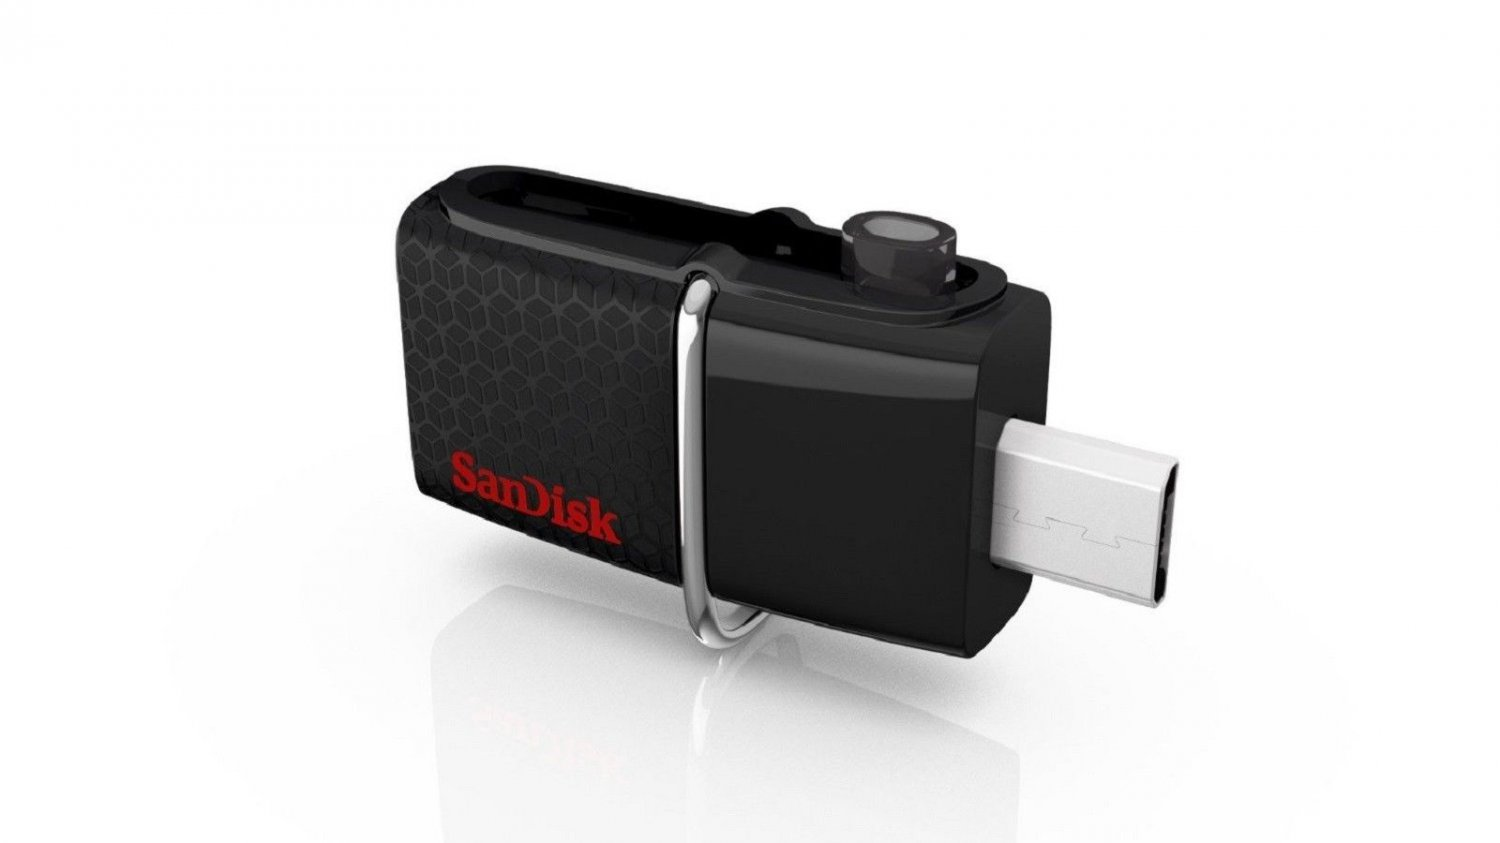 SANDISK ULTRA DUAL OTG 3.0 64GB 130MB/SEC ON-THE-GO USB FLASH DRIVE 130MB/S